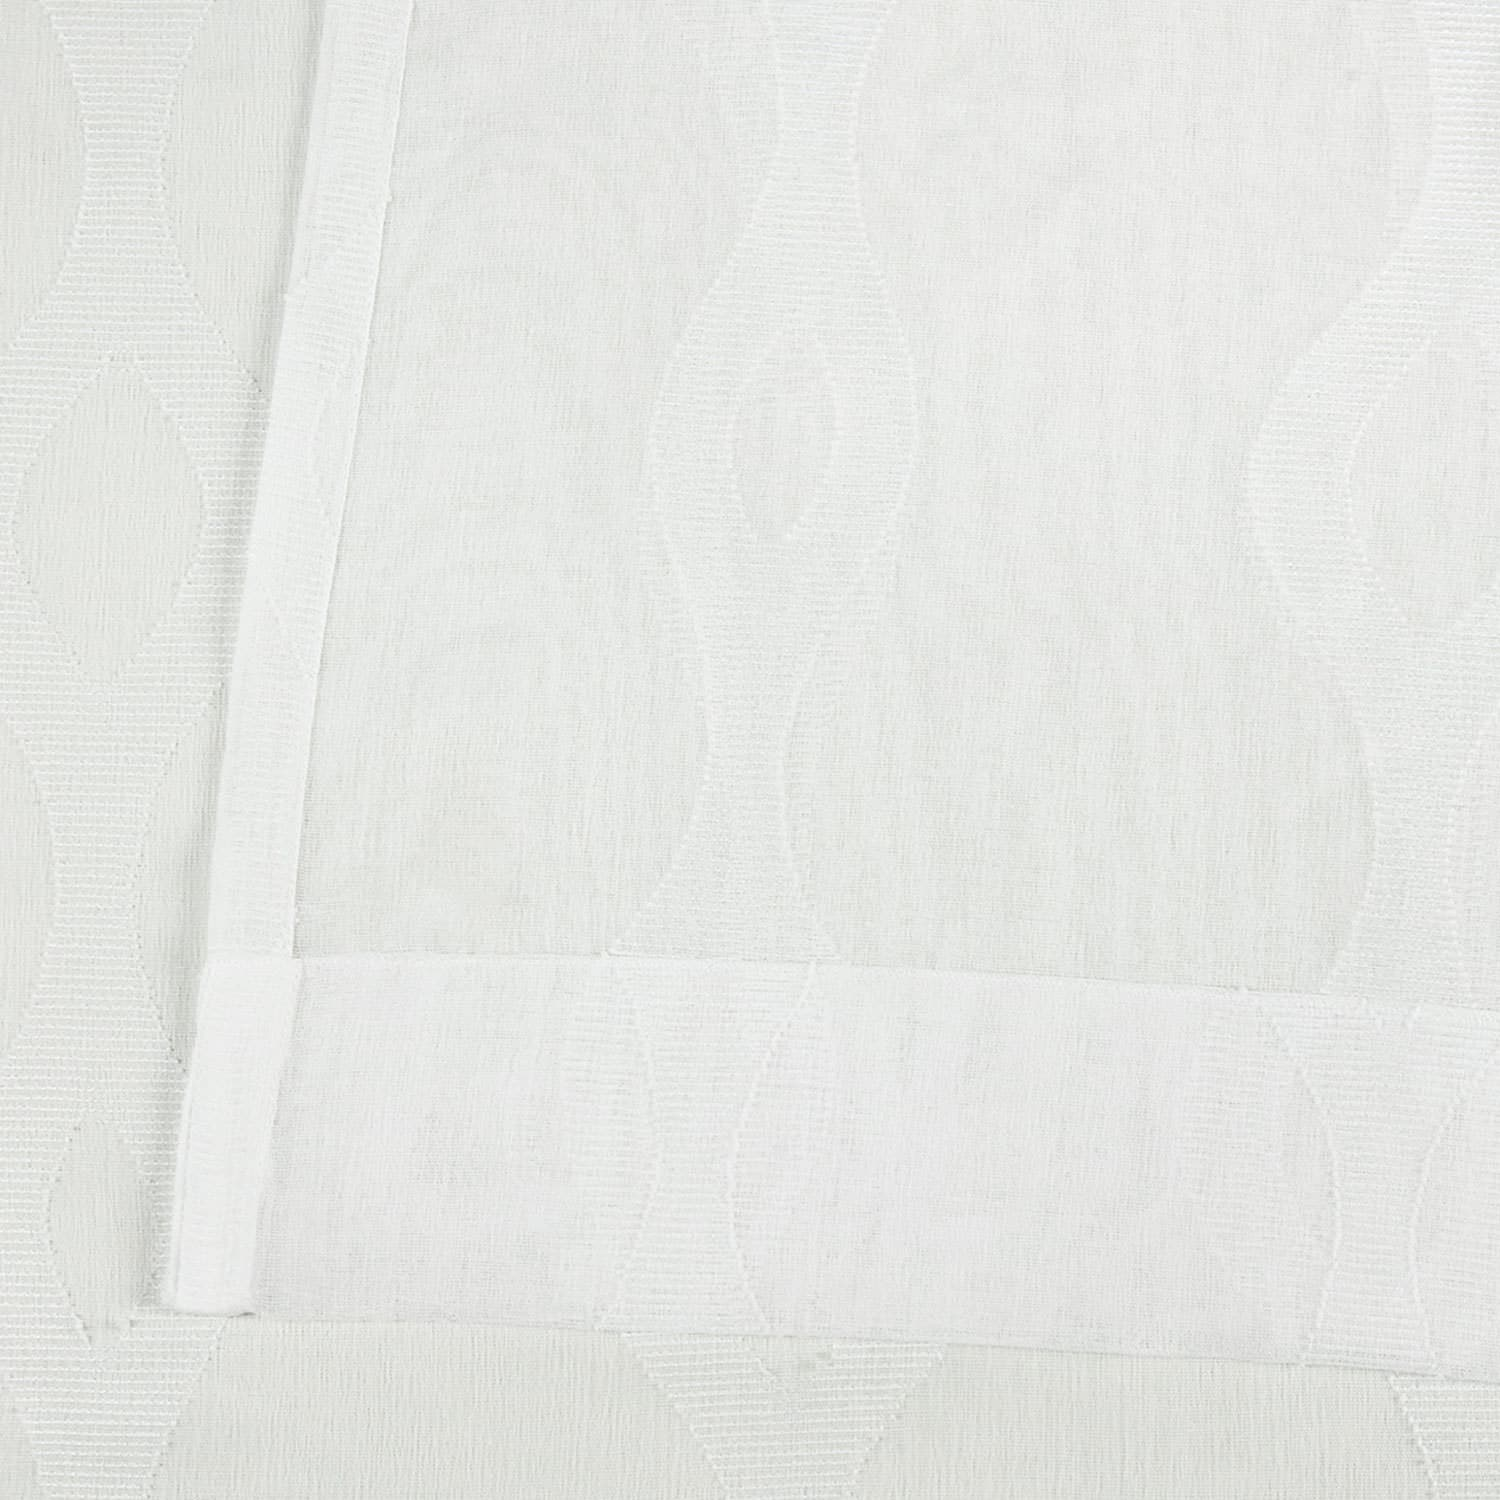 Vega White Patterned Linen Sheer Curtain